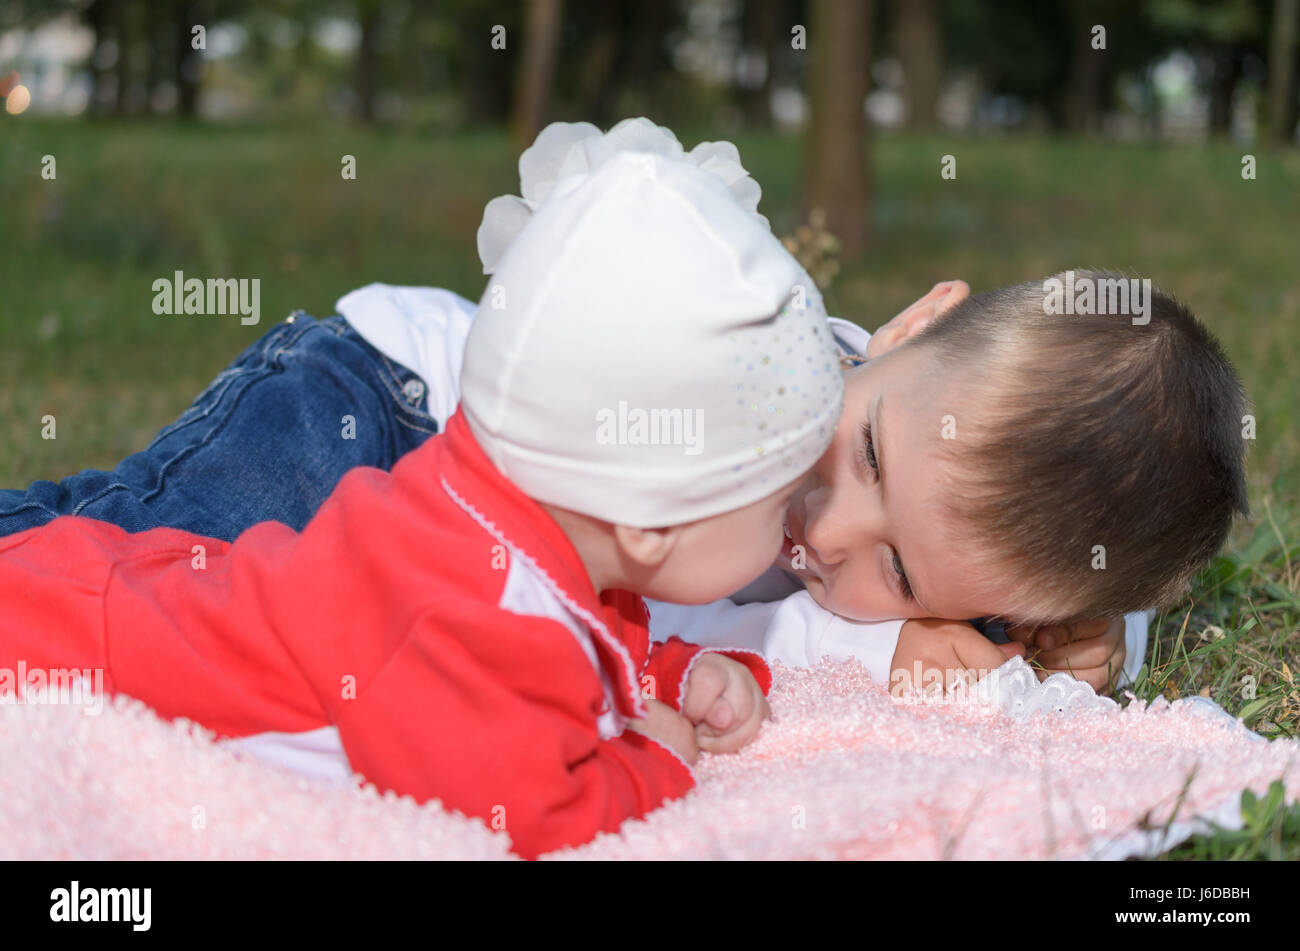 Underage boy with his little sister about something sweet deal. - Stock Image